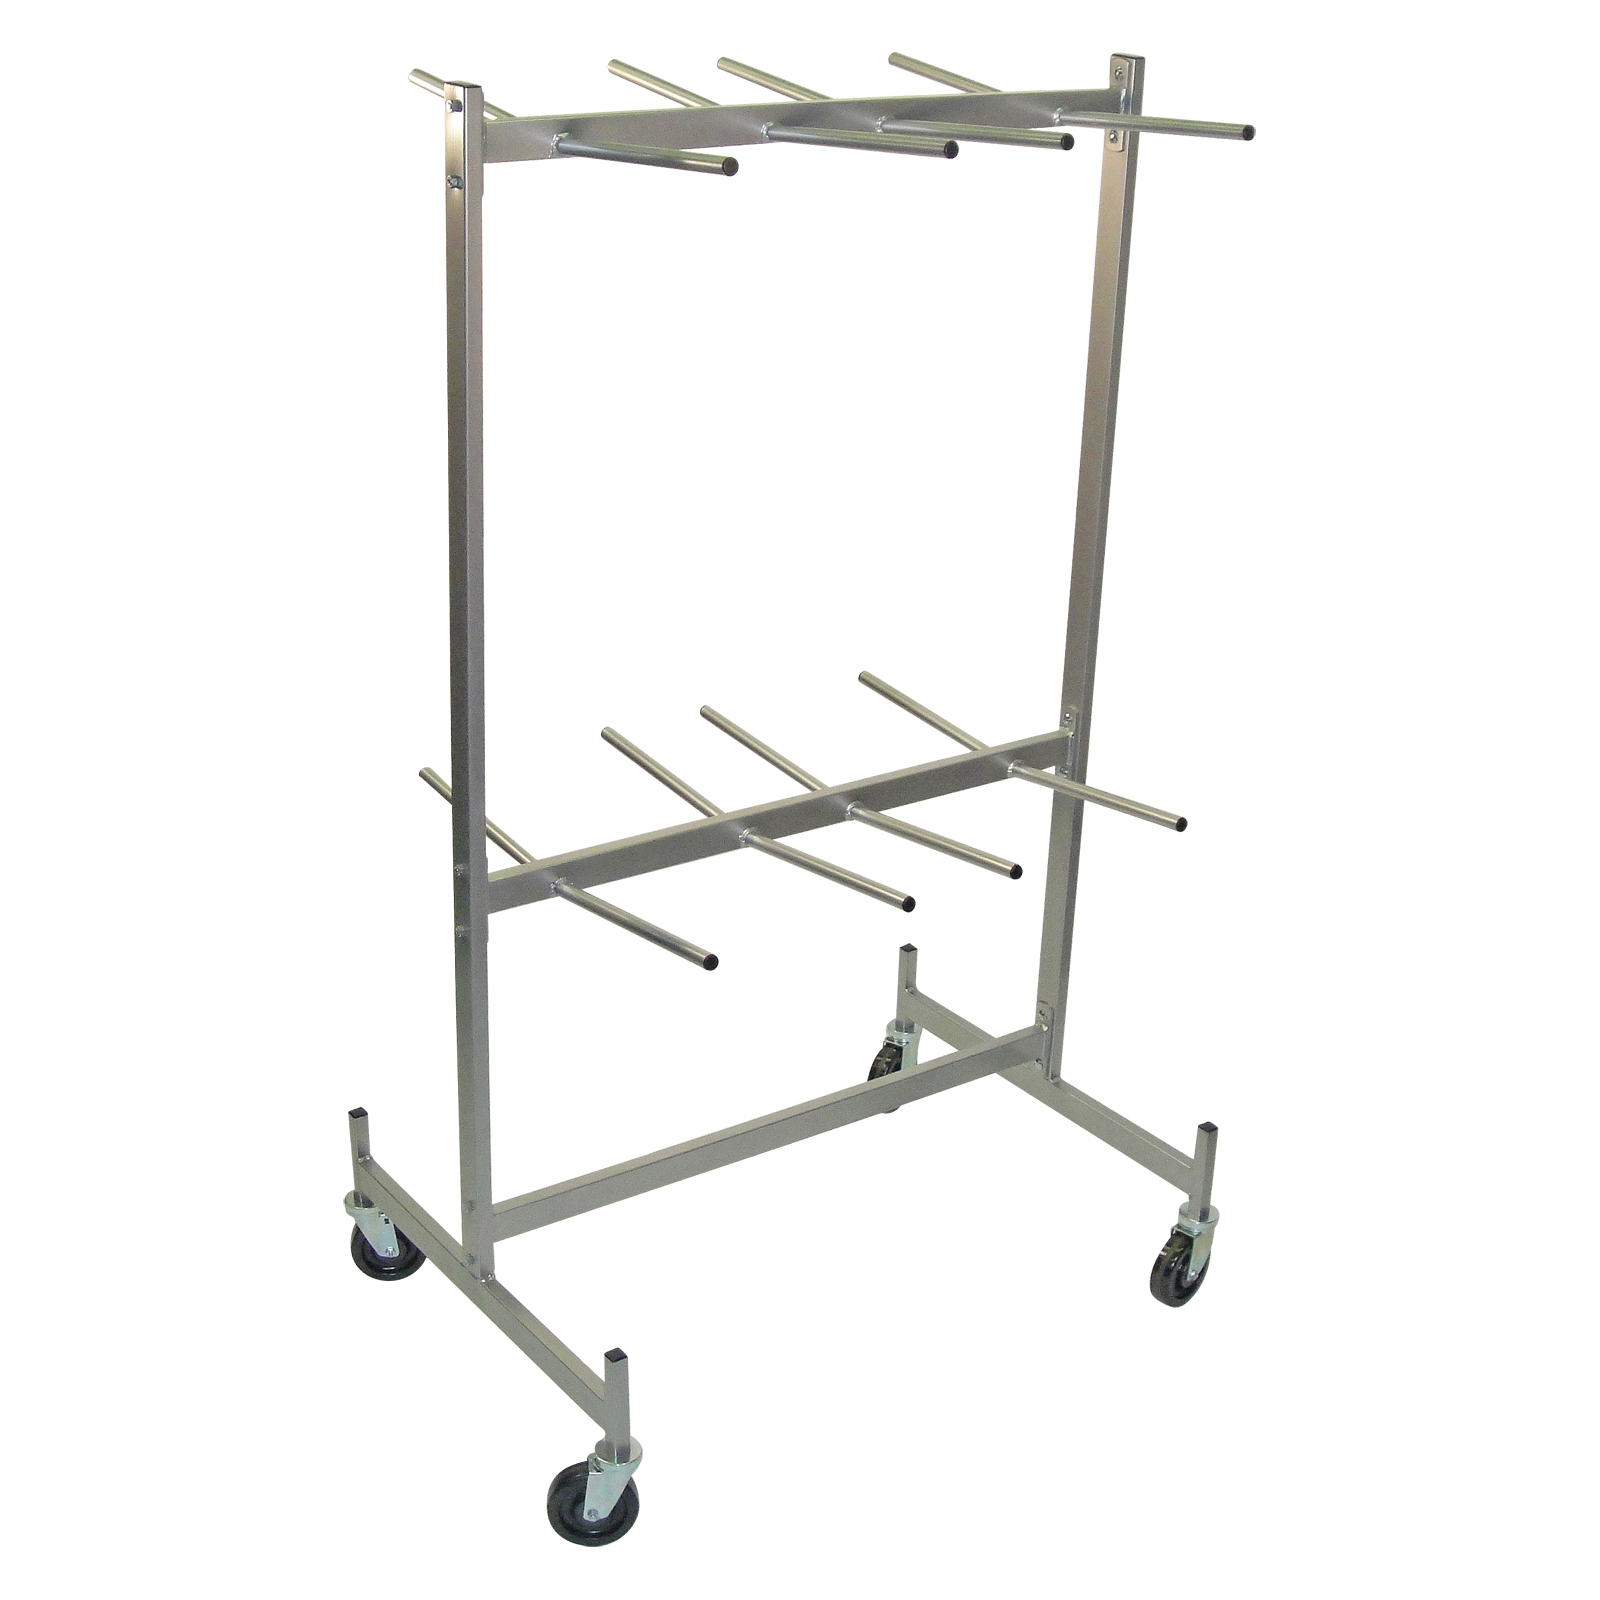 raymond products hanging folded chair storage truck for